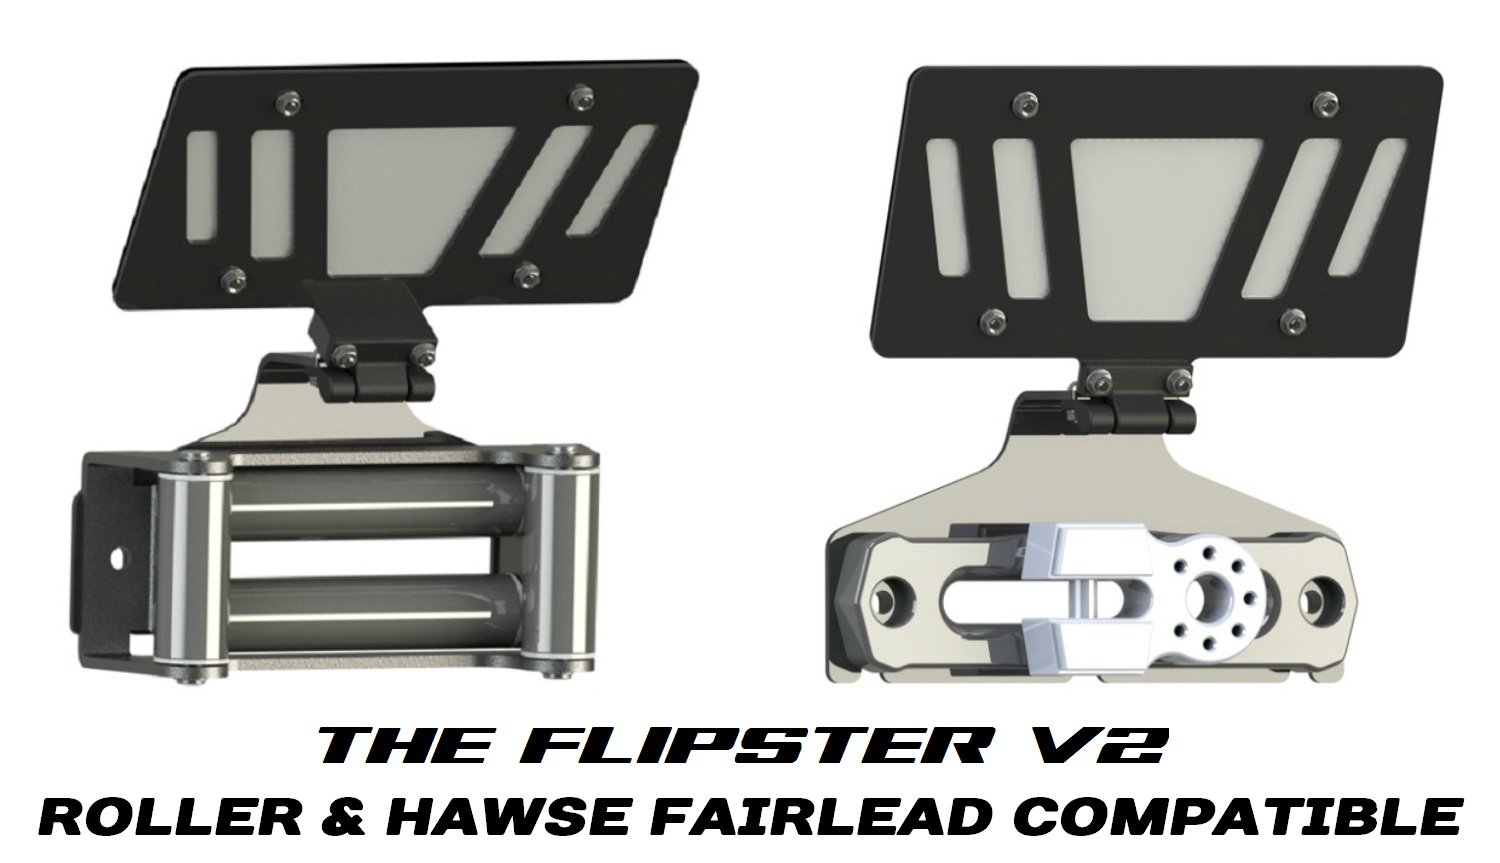 Cascadia 4x4 Flipster V2 - Winch License Plate Mounting system - Hawse/Roller fairlead compatible - Made in USA/Canada by Cascadia 4x4 (Image #2)